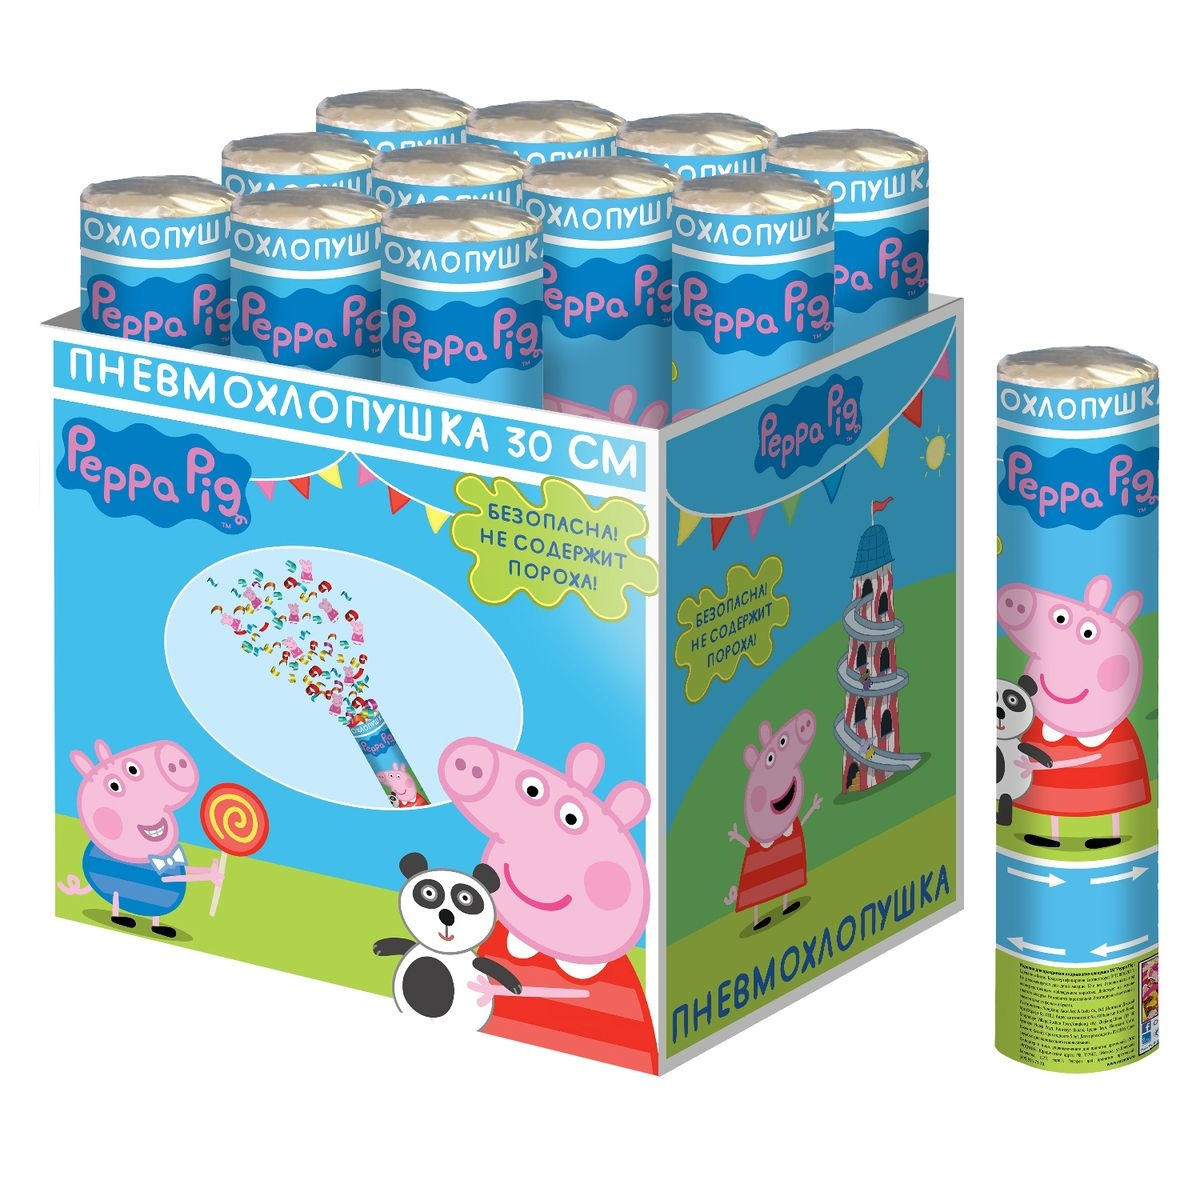 Peppa Pig Peppa Pig Peppa Pig peppa pig find the hat sticker book